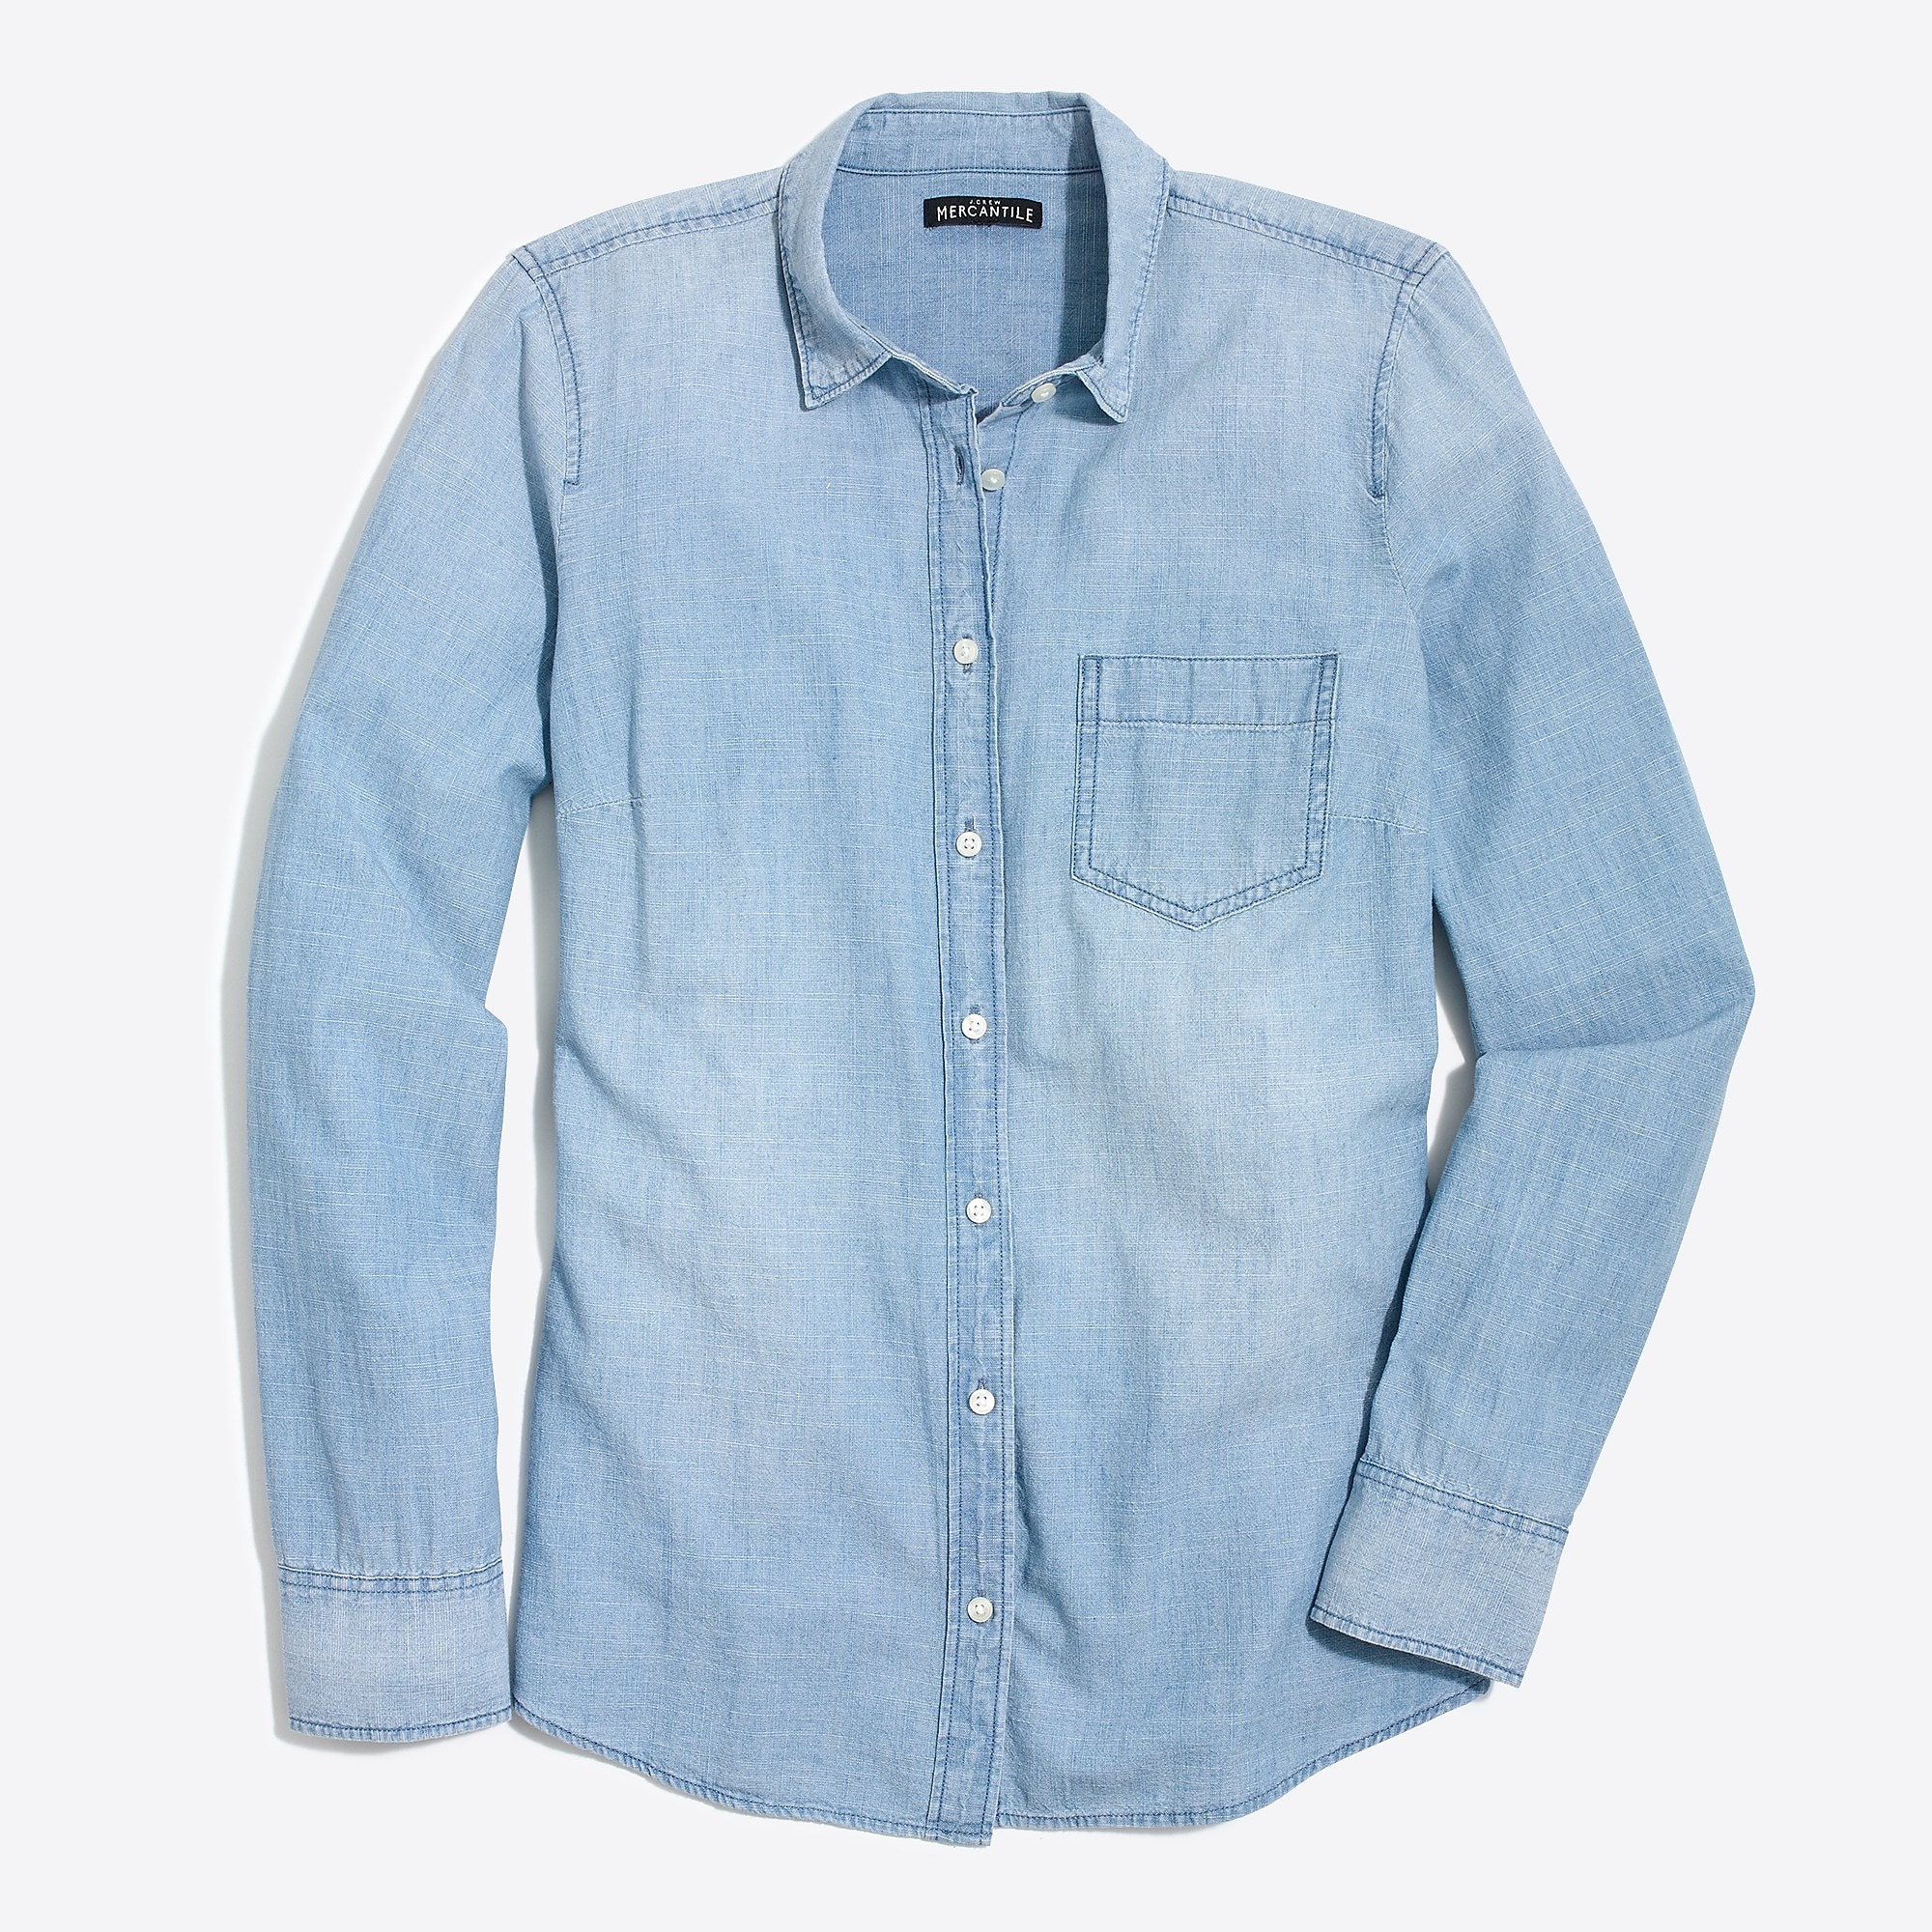 J.Crew Factory: Chambray shirt in perfect fit